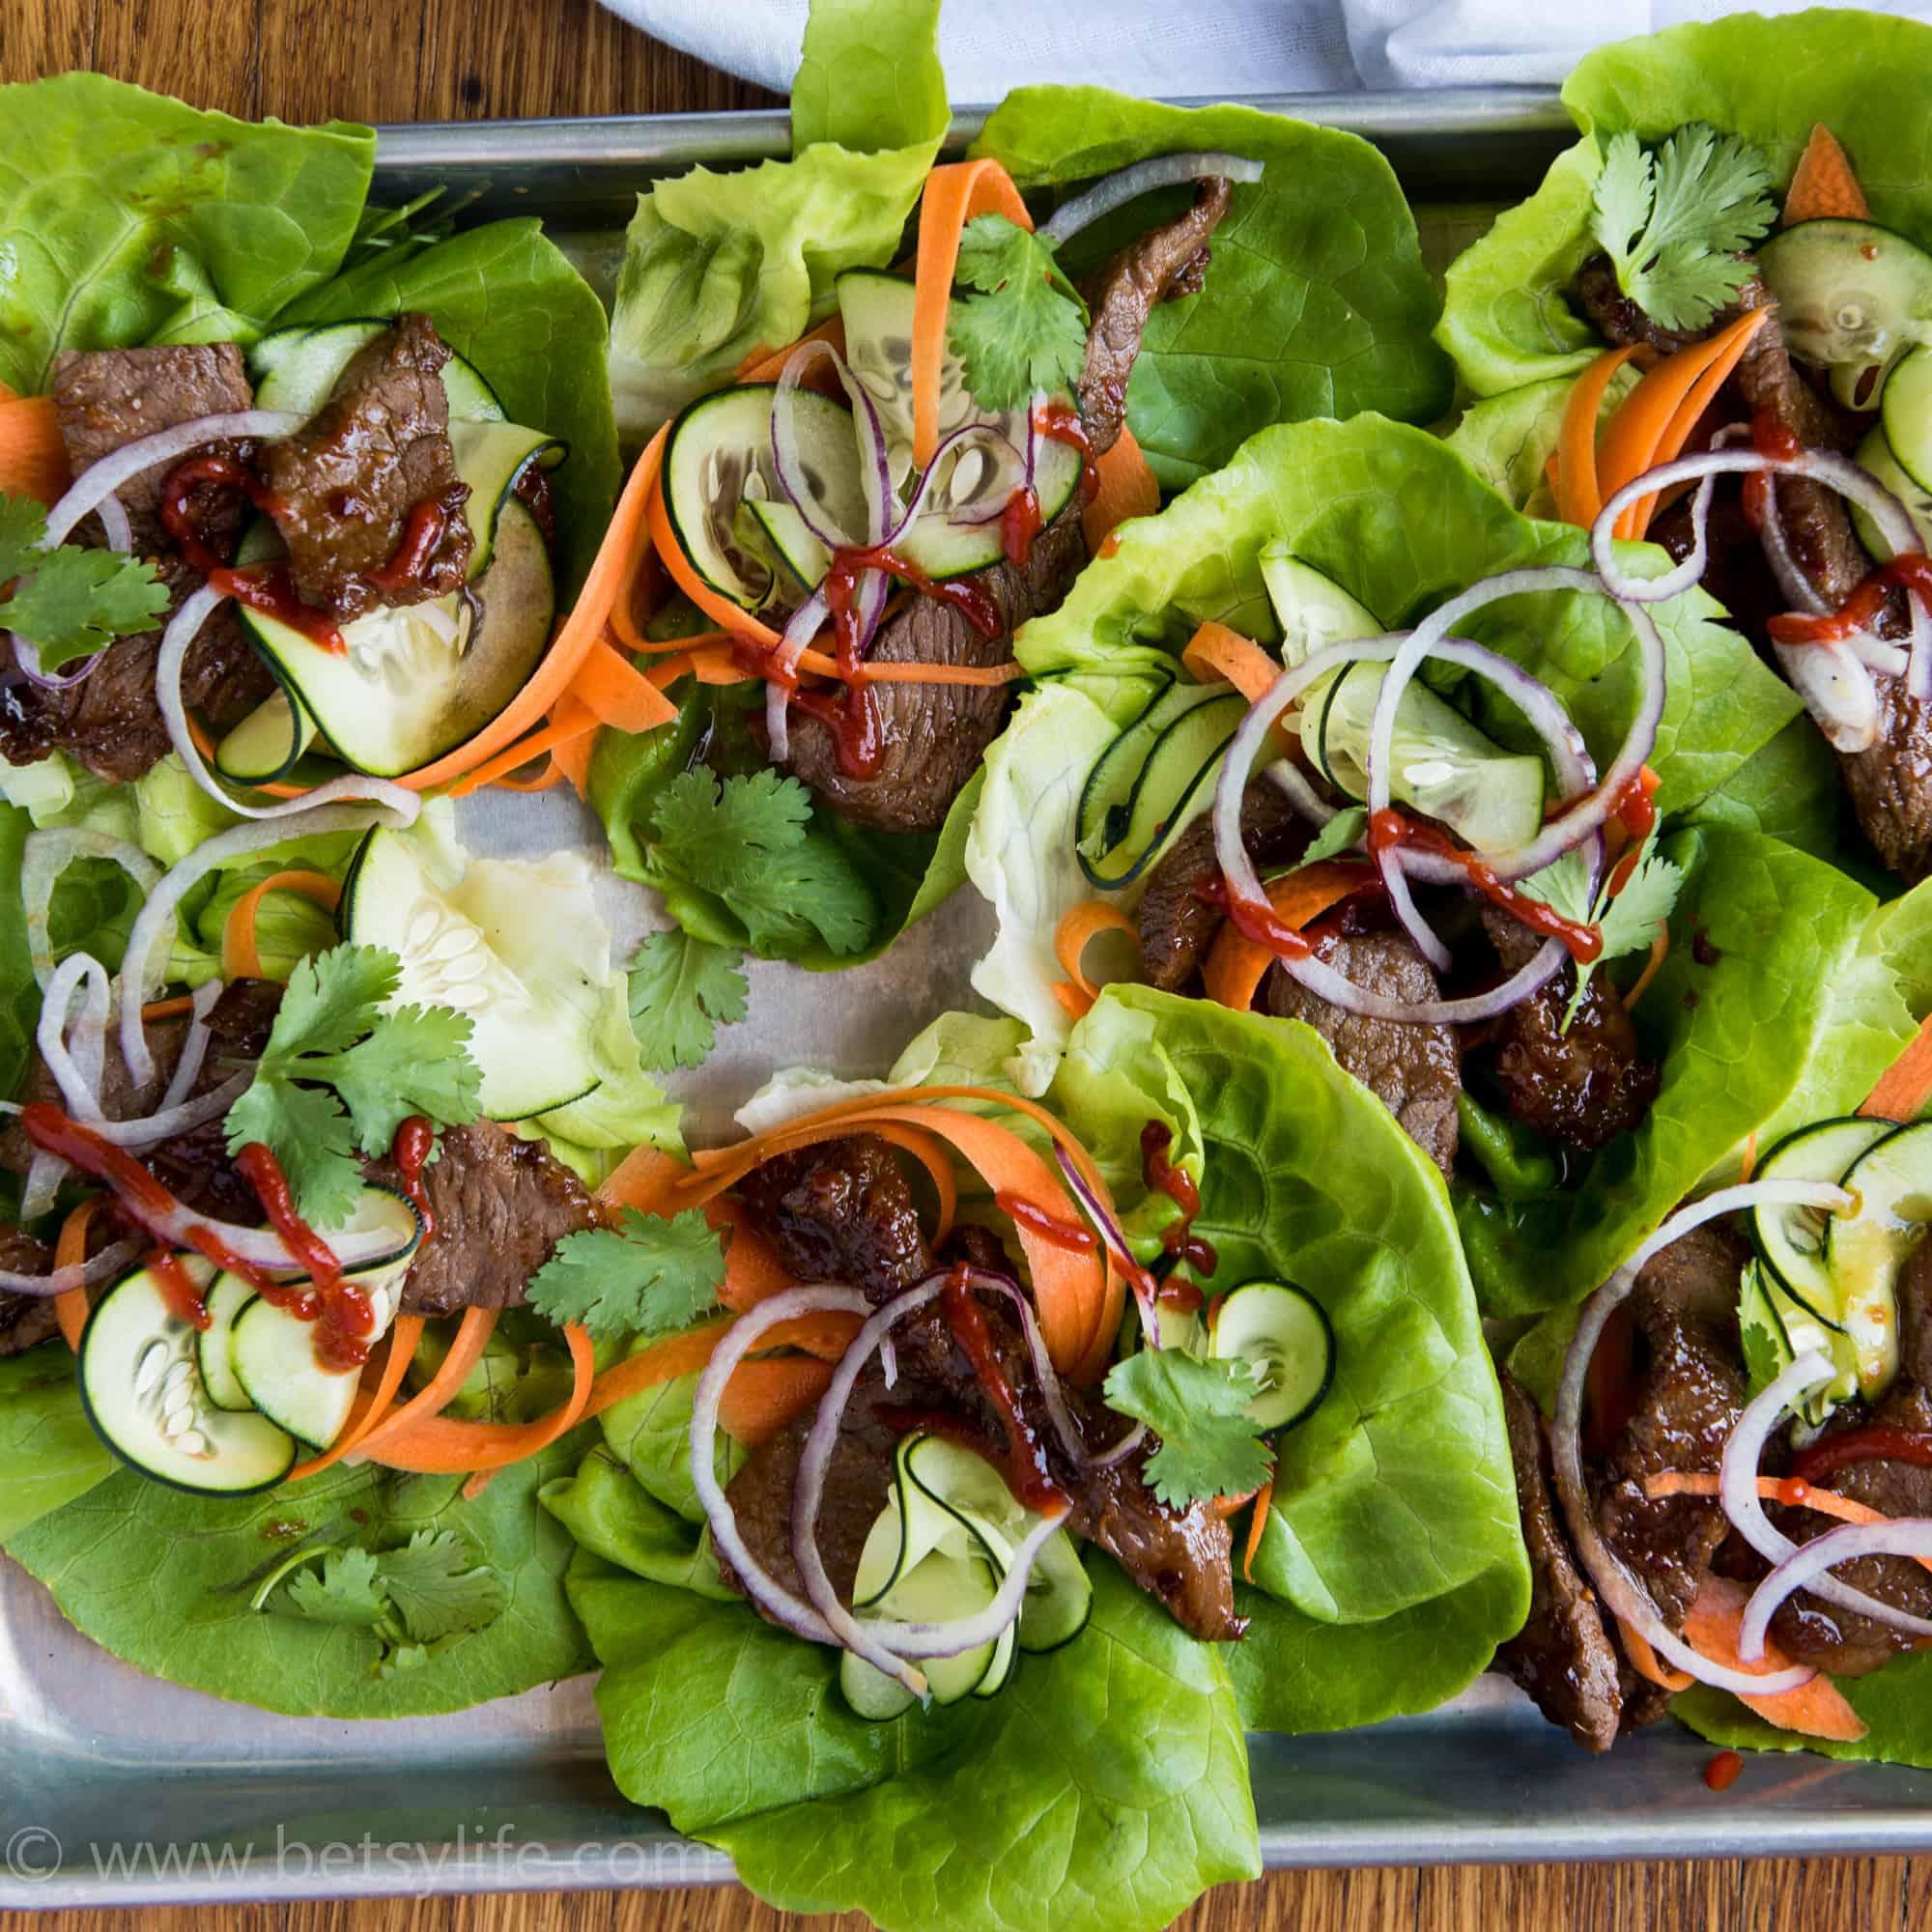 Overhead of a sheet pan filled with healthy lettuce wraps filled with steak, thinly shaved carrots, cucumbers and red onions. Drizzle of sriracha sauce over the top